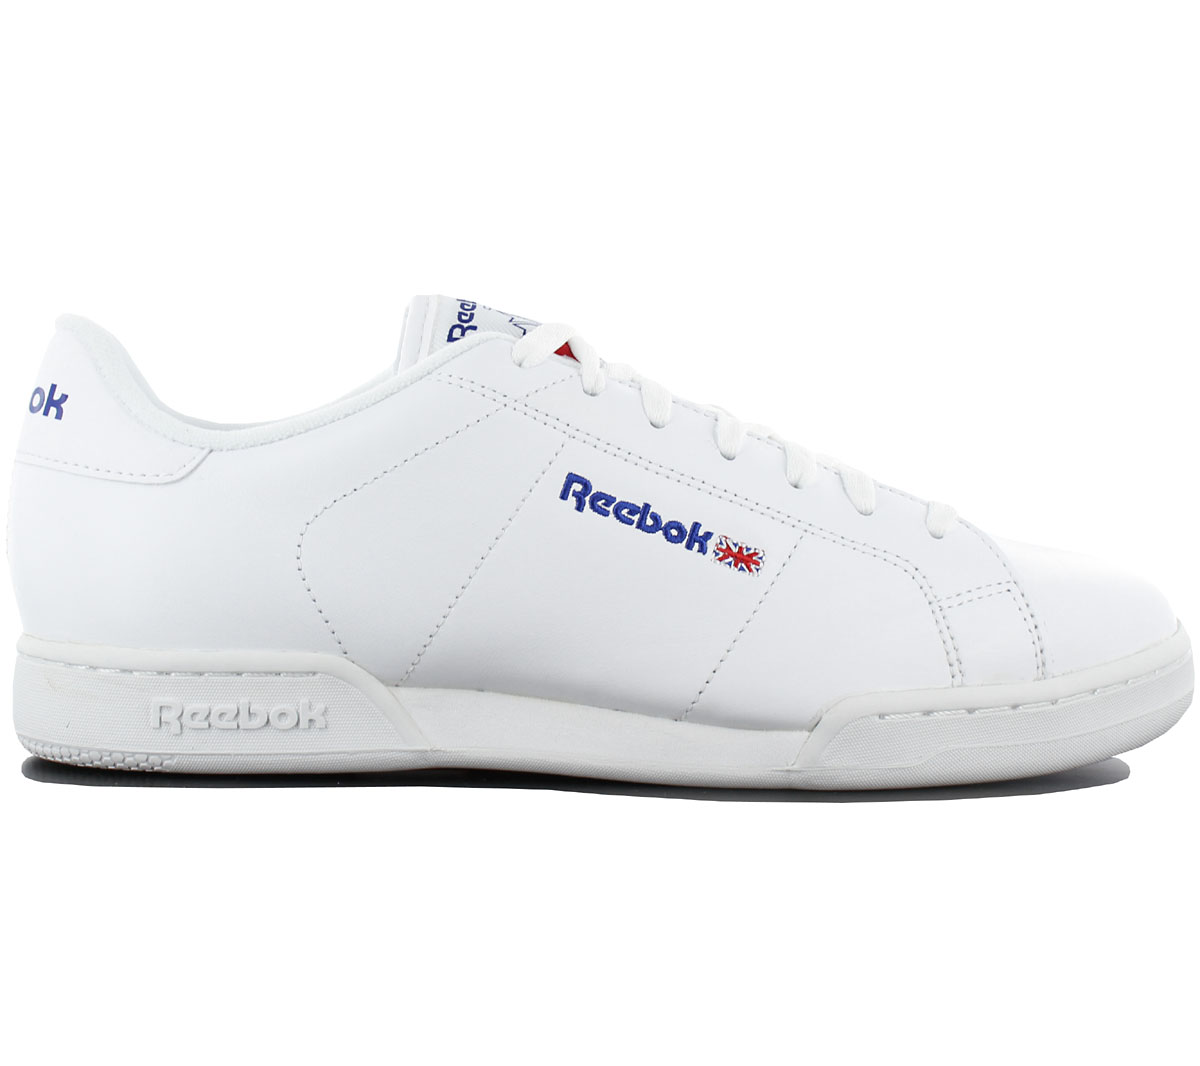 9663695752605 Reebok Classic Npc II Trainers Shoes Leather White Sneakers Leisure ...